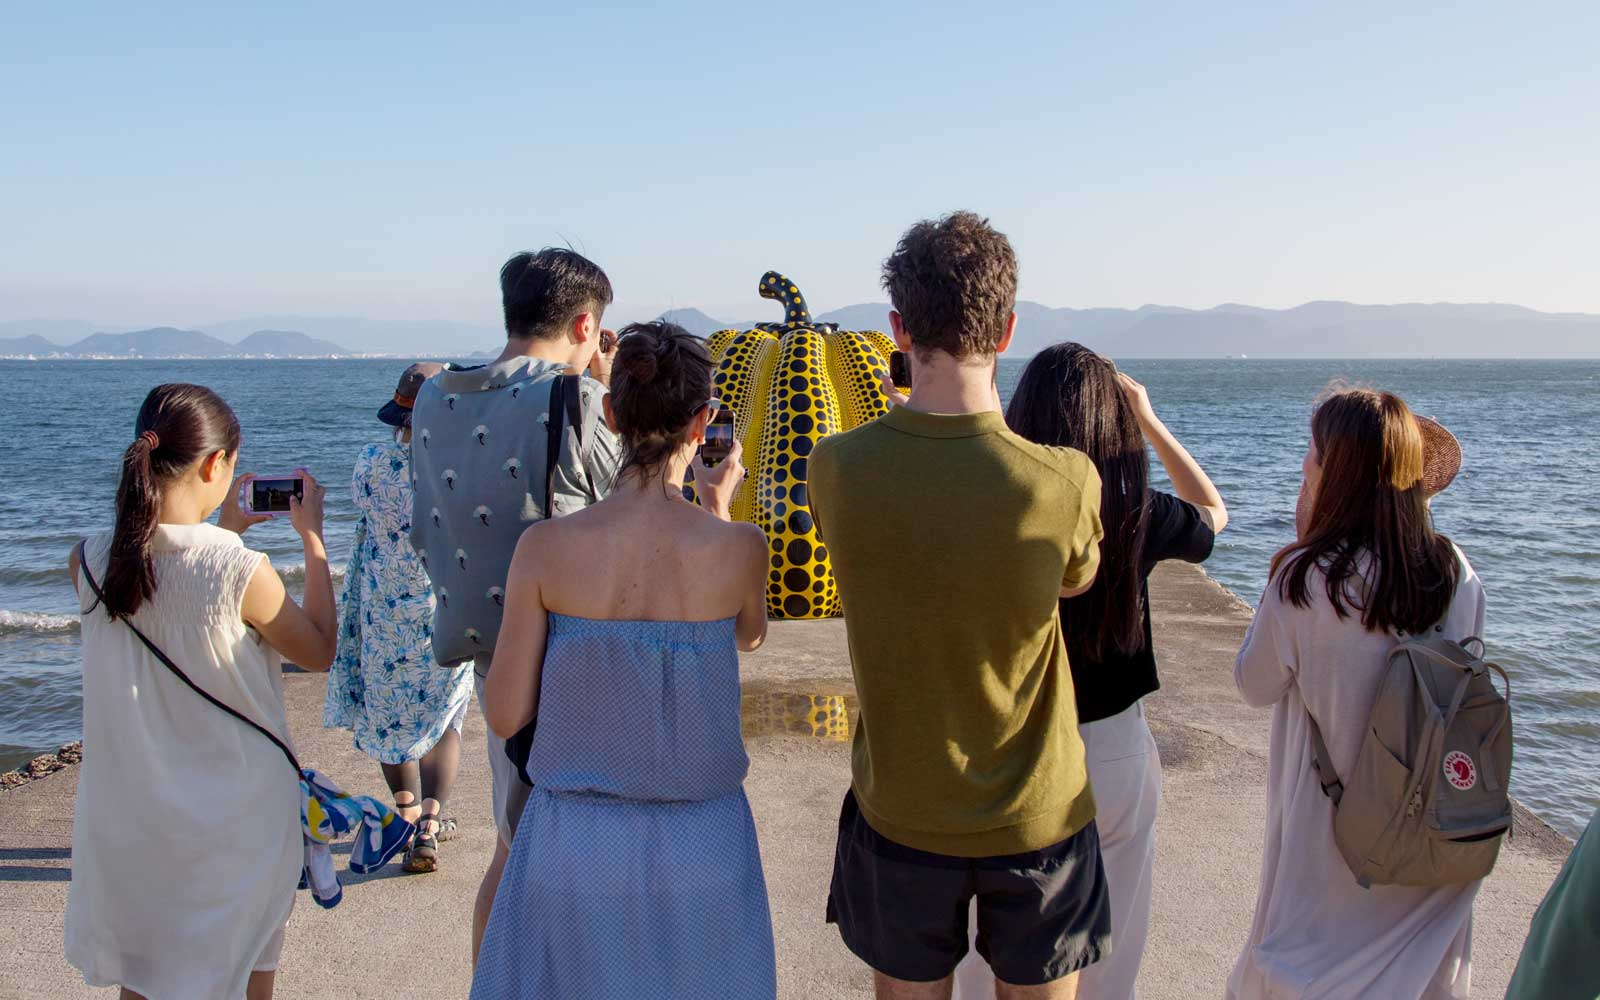 Tourists taking pictures of the yellow pumpkin by Yayoi Kusama on pier at sea, Seto Inland Sea, Naoshima, Japan